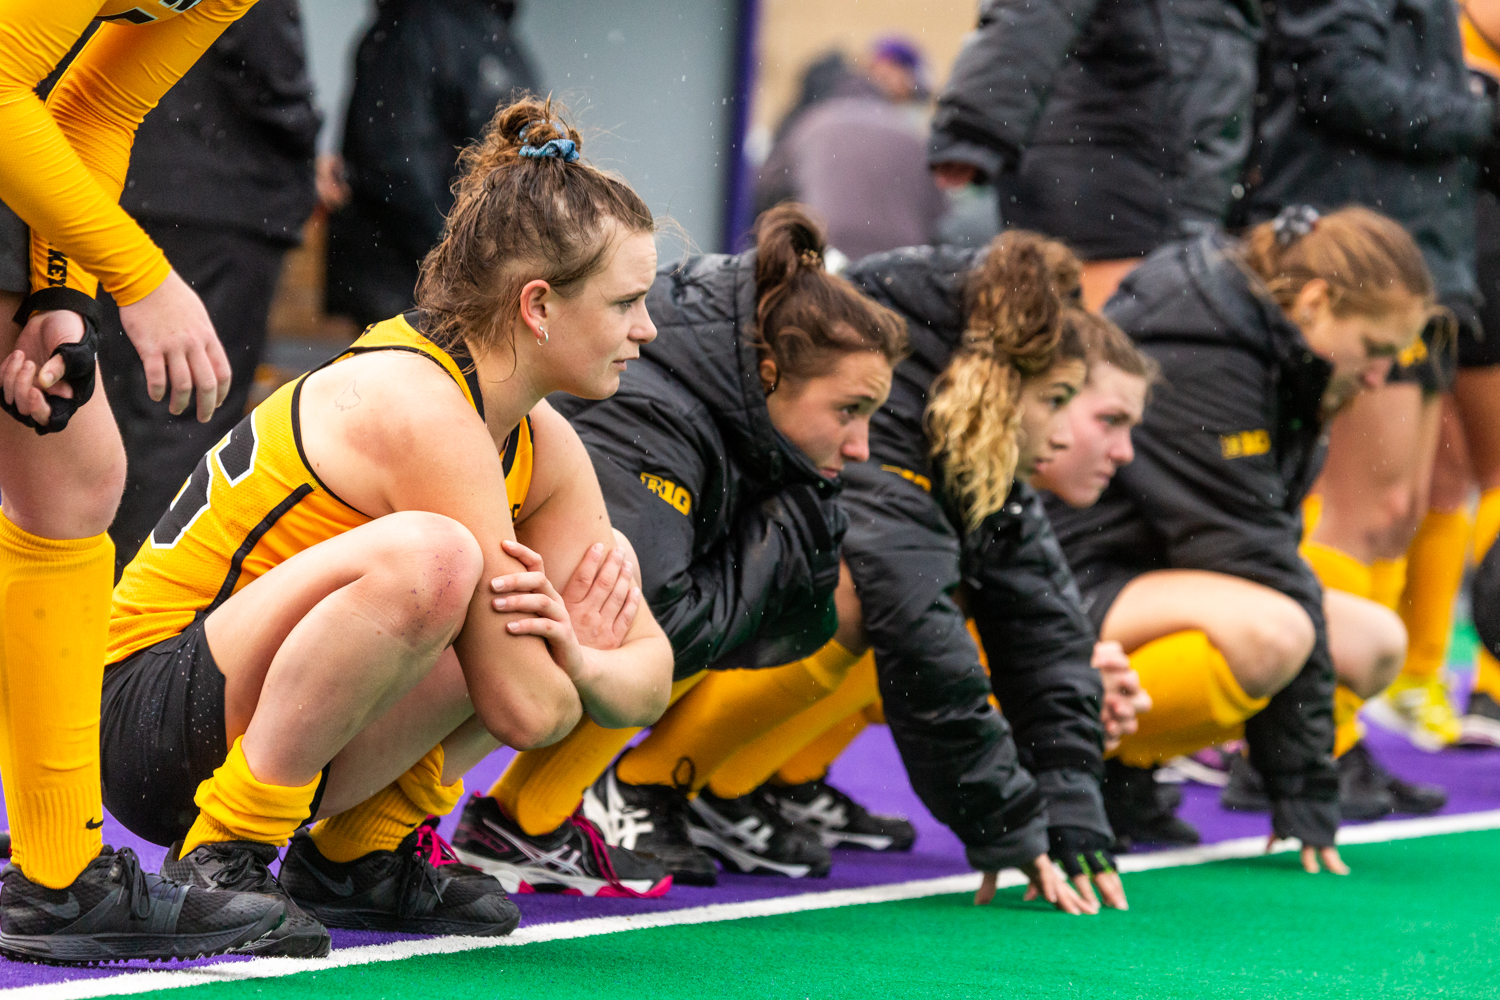 Iowa players cool down on the sidelines after the Championship Game in the Big Ten Field Hockey Tournament at Lakeside Field in Evanston, IL on Sunday, Nov. 3, 2018. The no. 2 ranked Terrapins defeated the no. 8 ranked Hawkeyes 2-1.